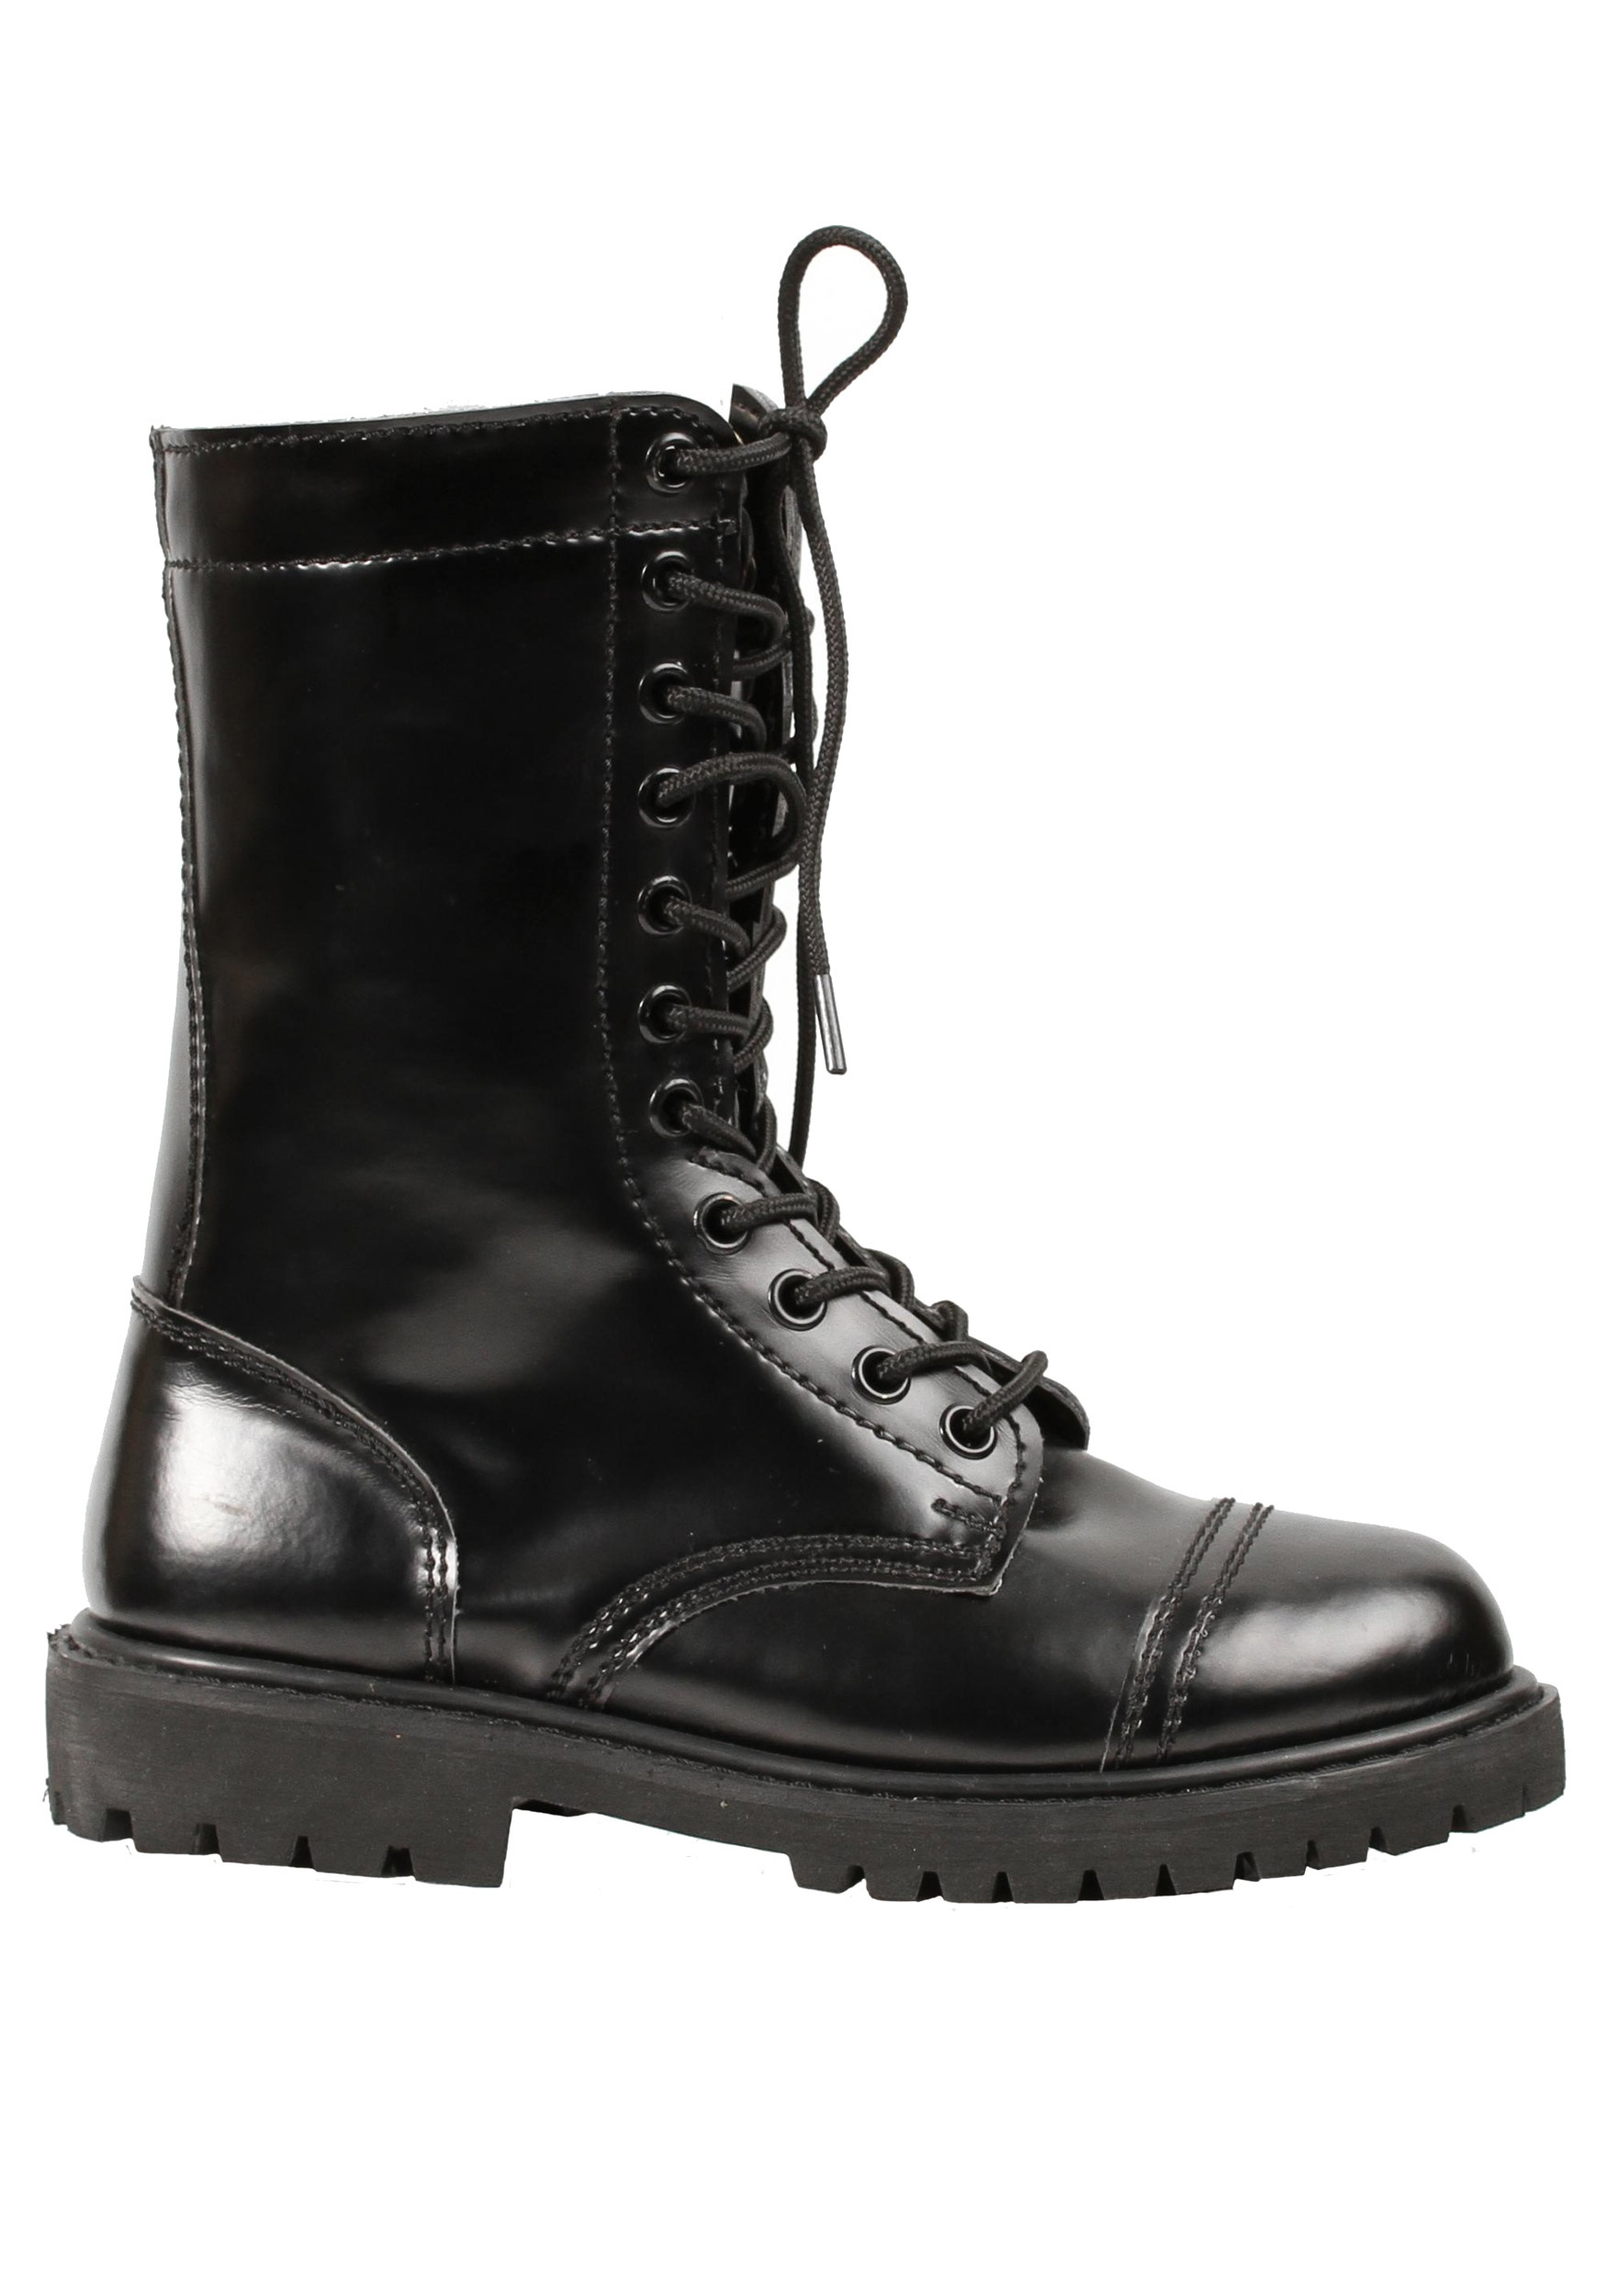 Where To Buy Combat Boots b2wS39p9